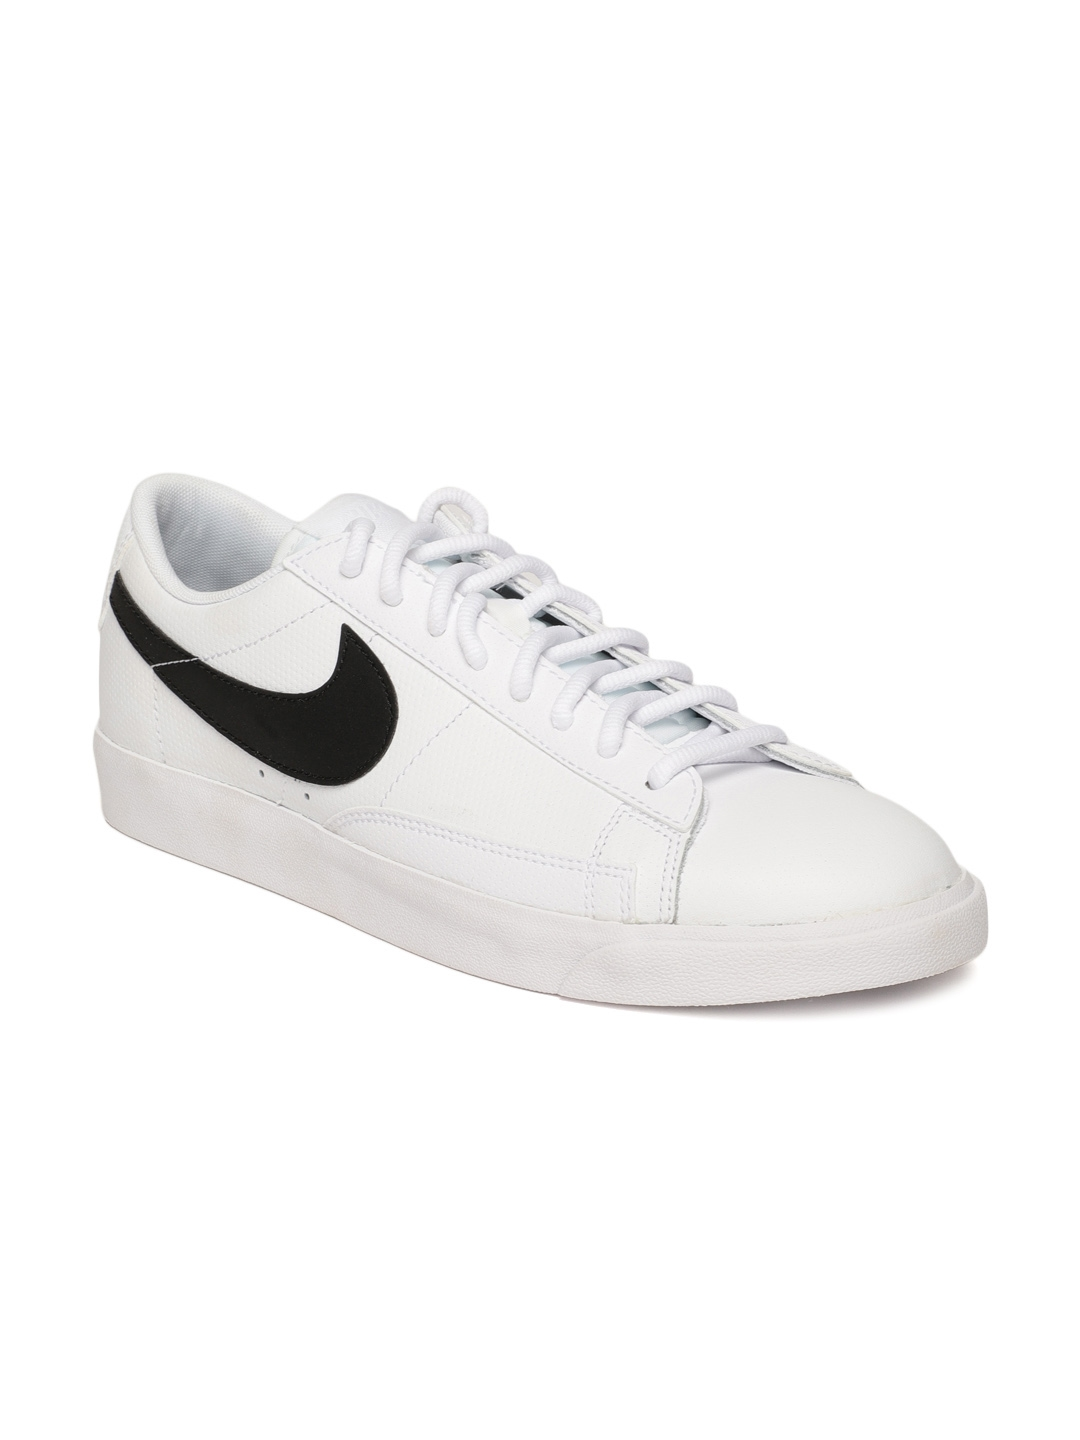 new arrival dac40 73de3 Nike Men White Blazer Low Leather Casual Shoes